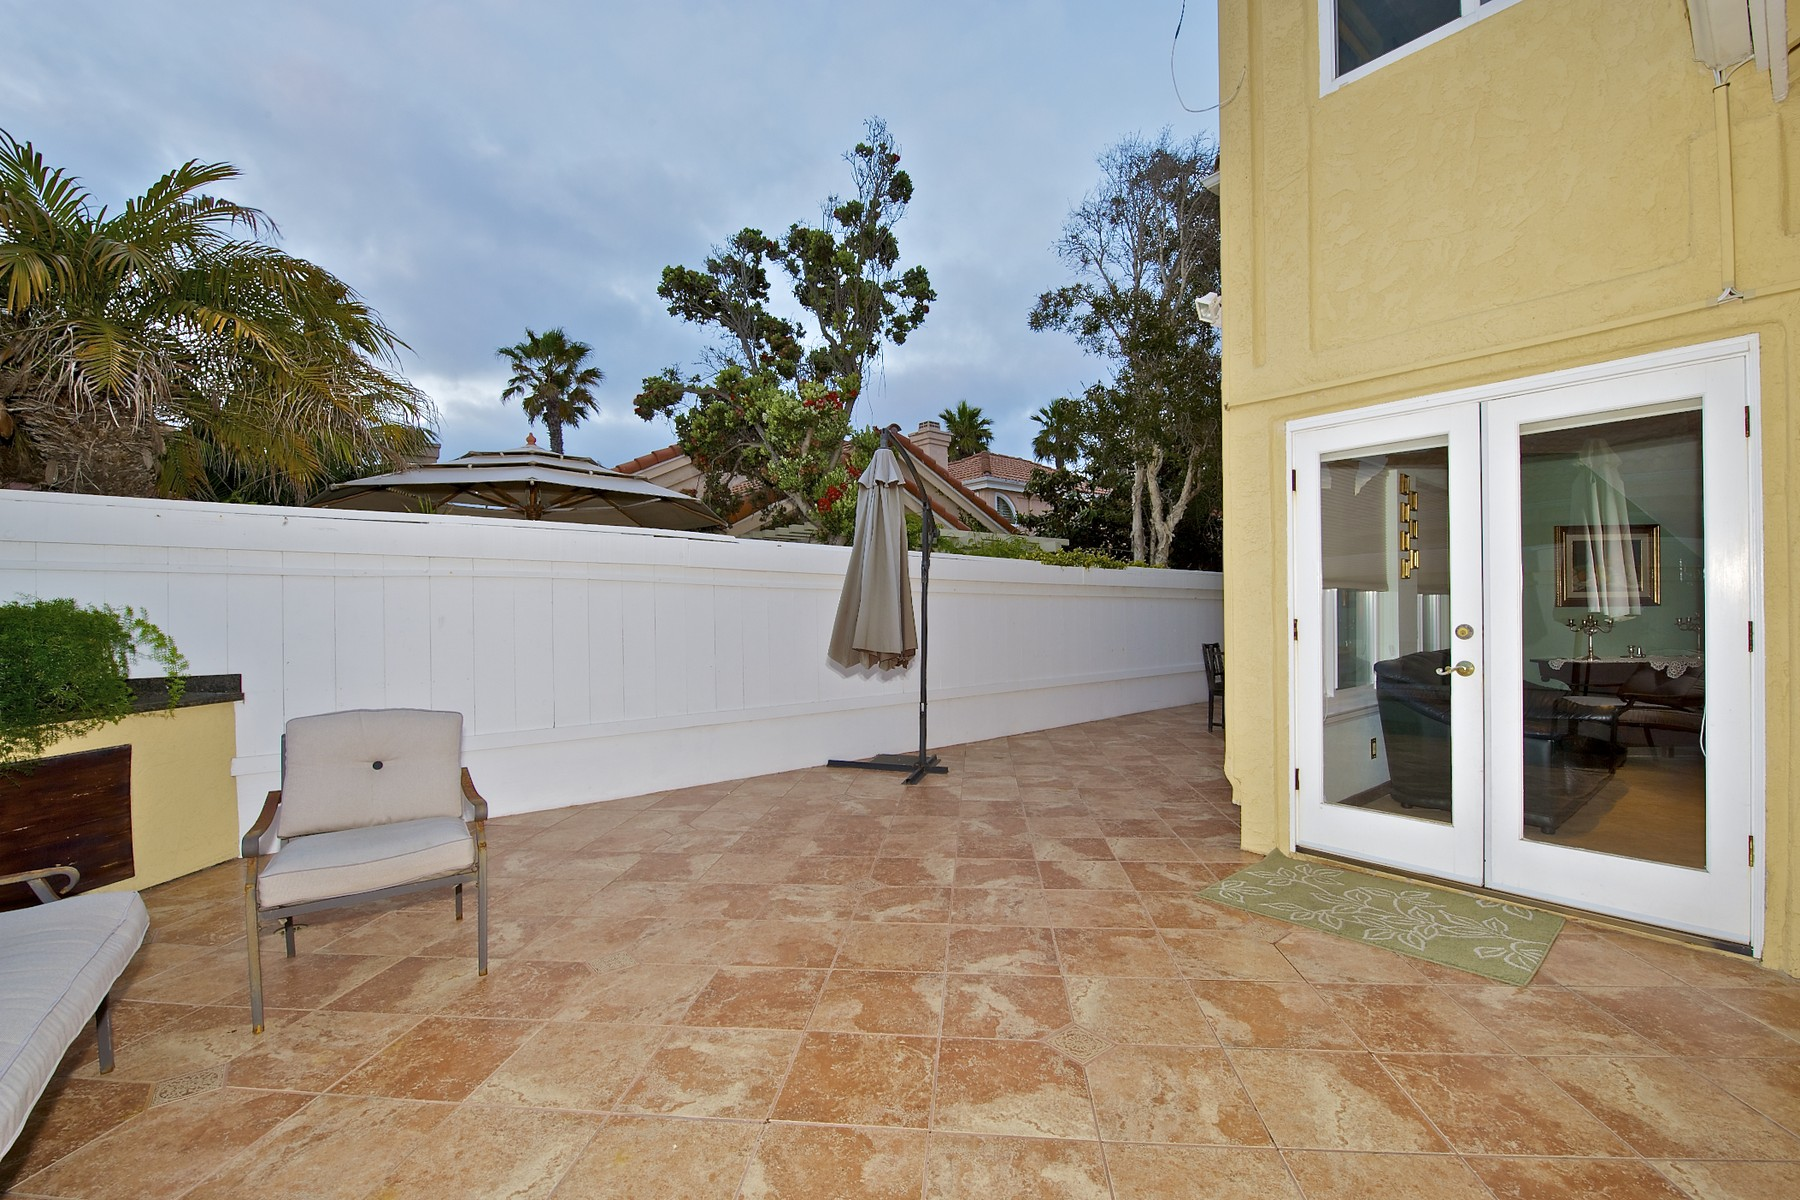 Additional photo for property listing at 52 Mardi Gras Road  Coronado, California 92118 Estados Unidos